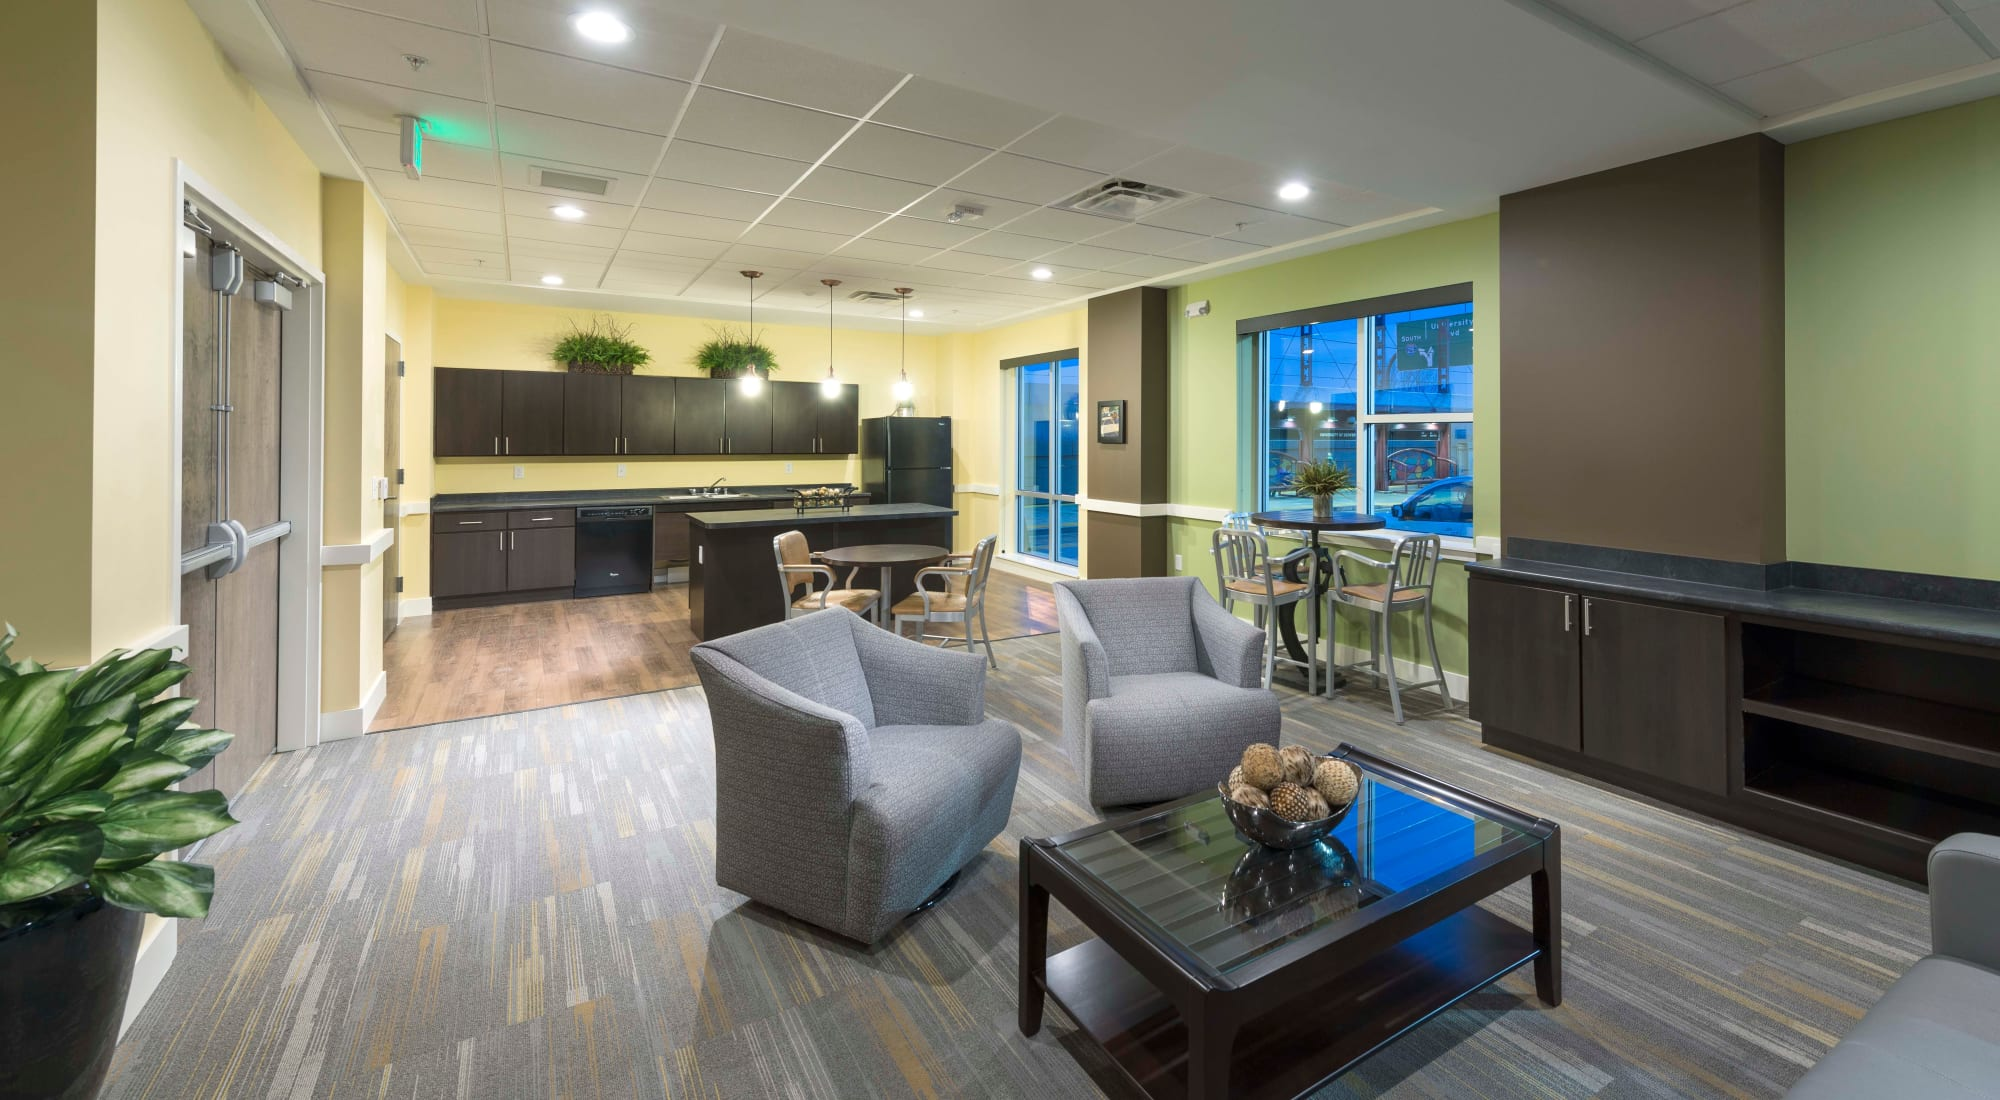 Beautiful interior shot of the building at University Station Apartments in Denver, Colorado